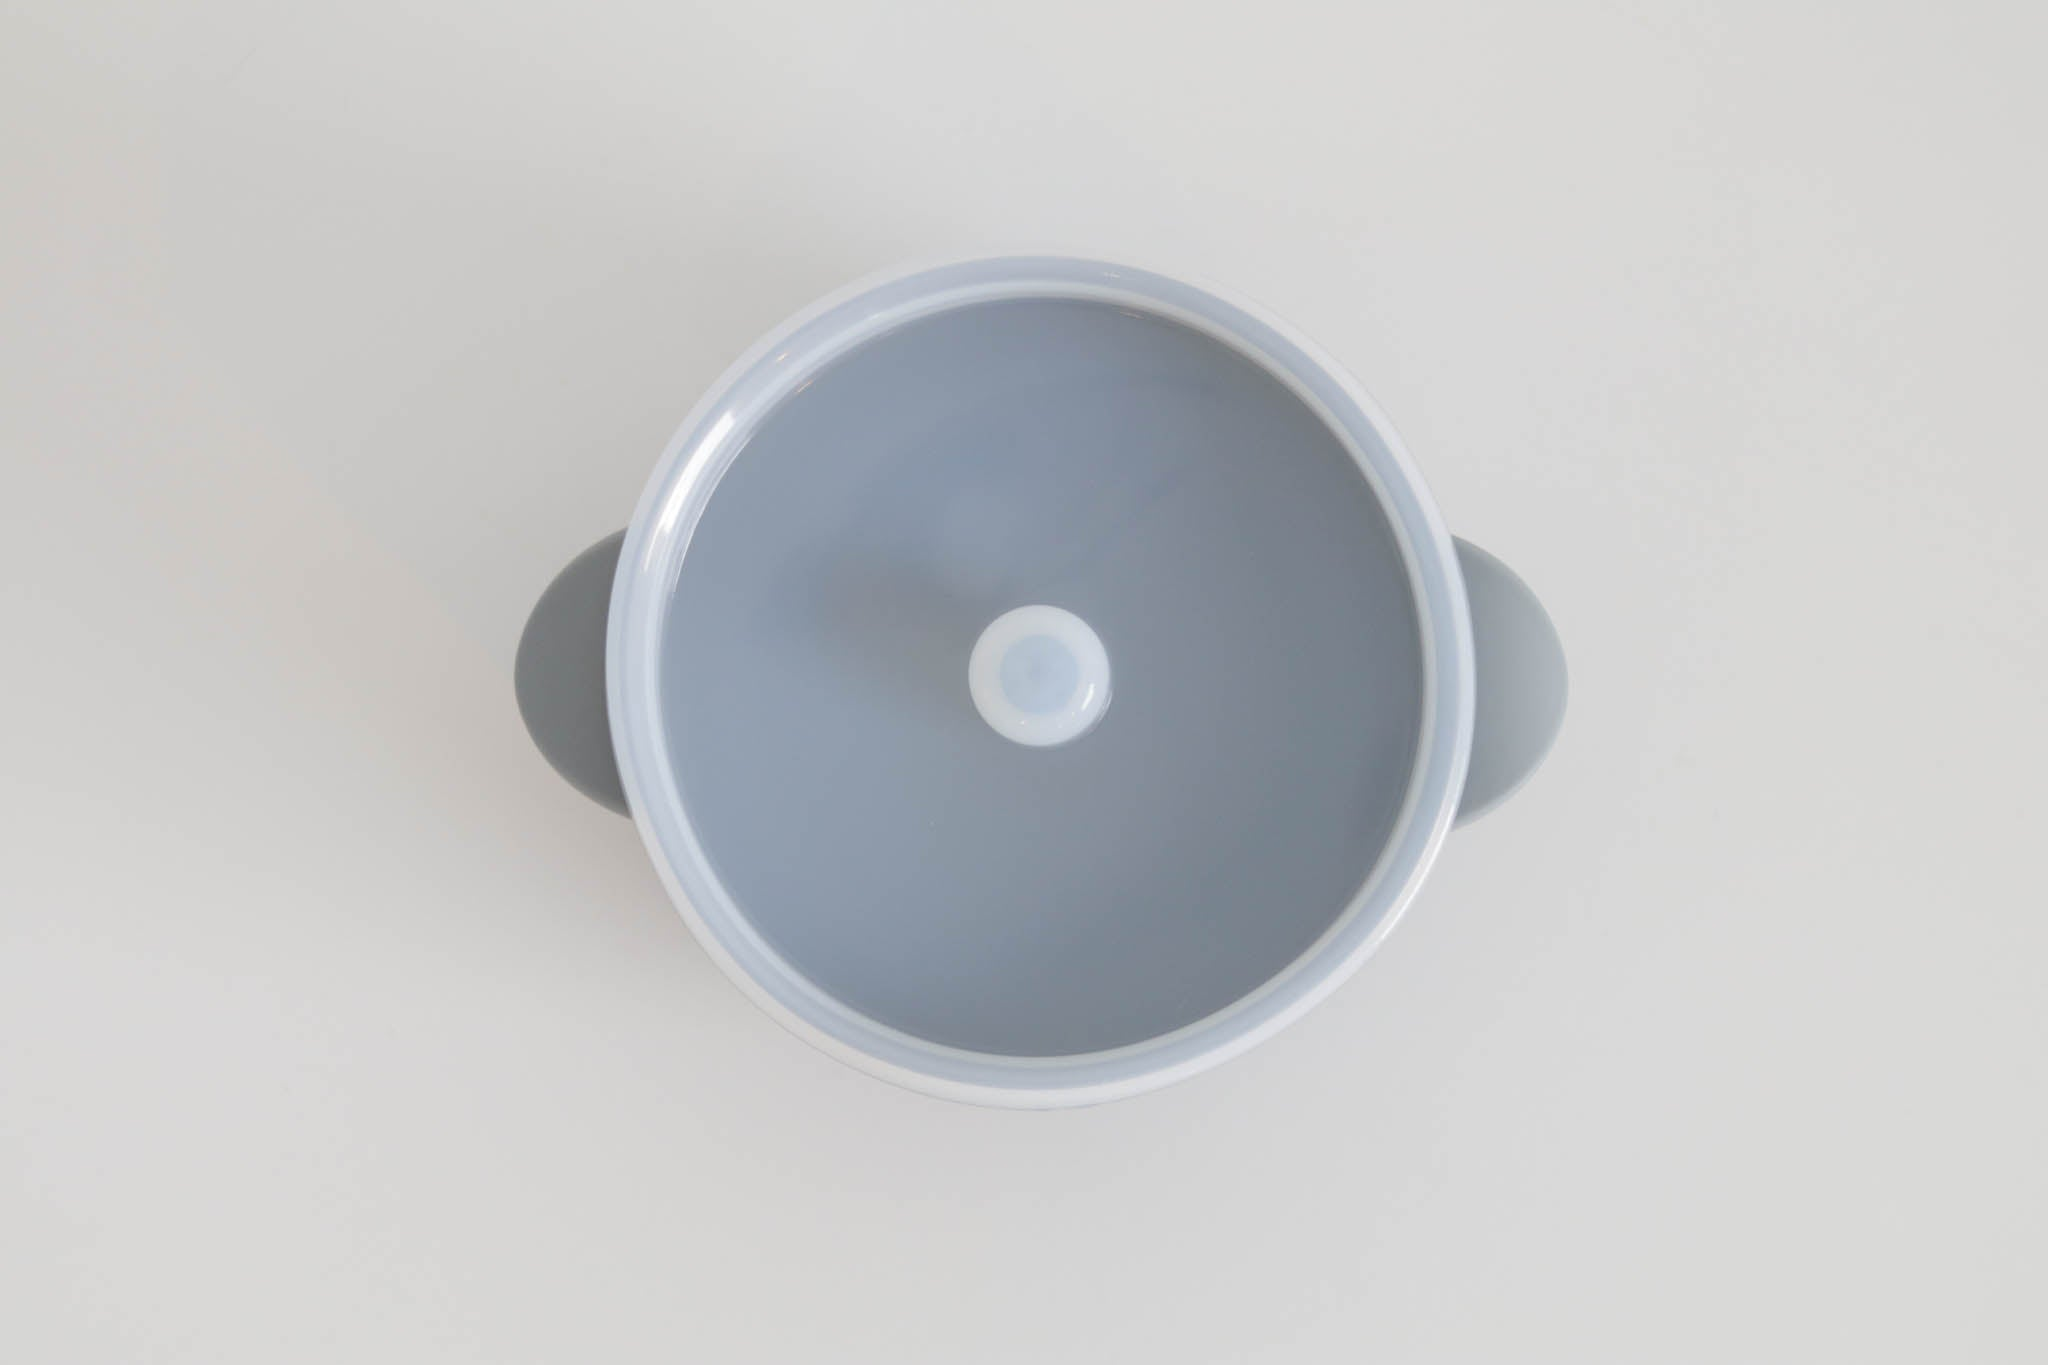 Sky Suction Bowl